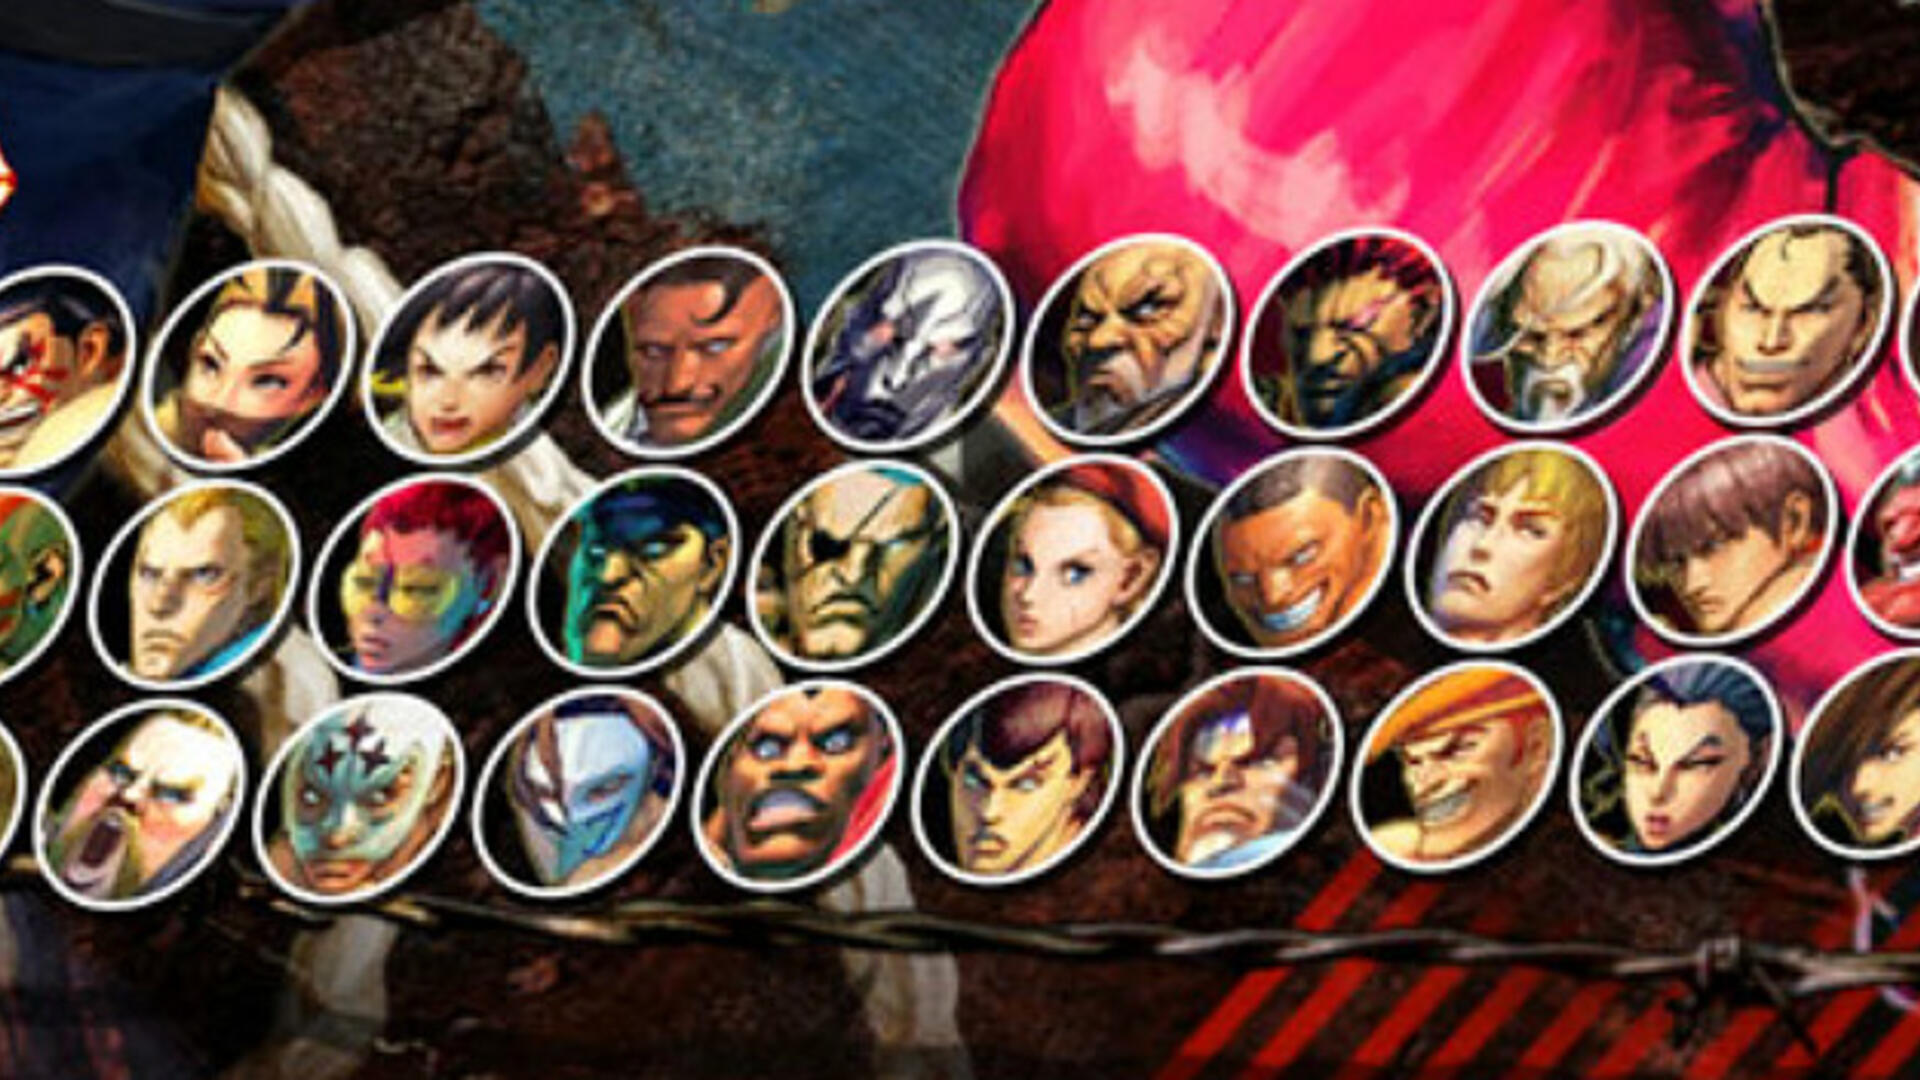 Ultra Street Fighter IV PS3 Review: Let's Play One More Round